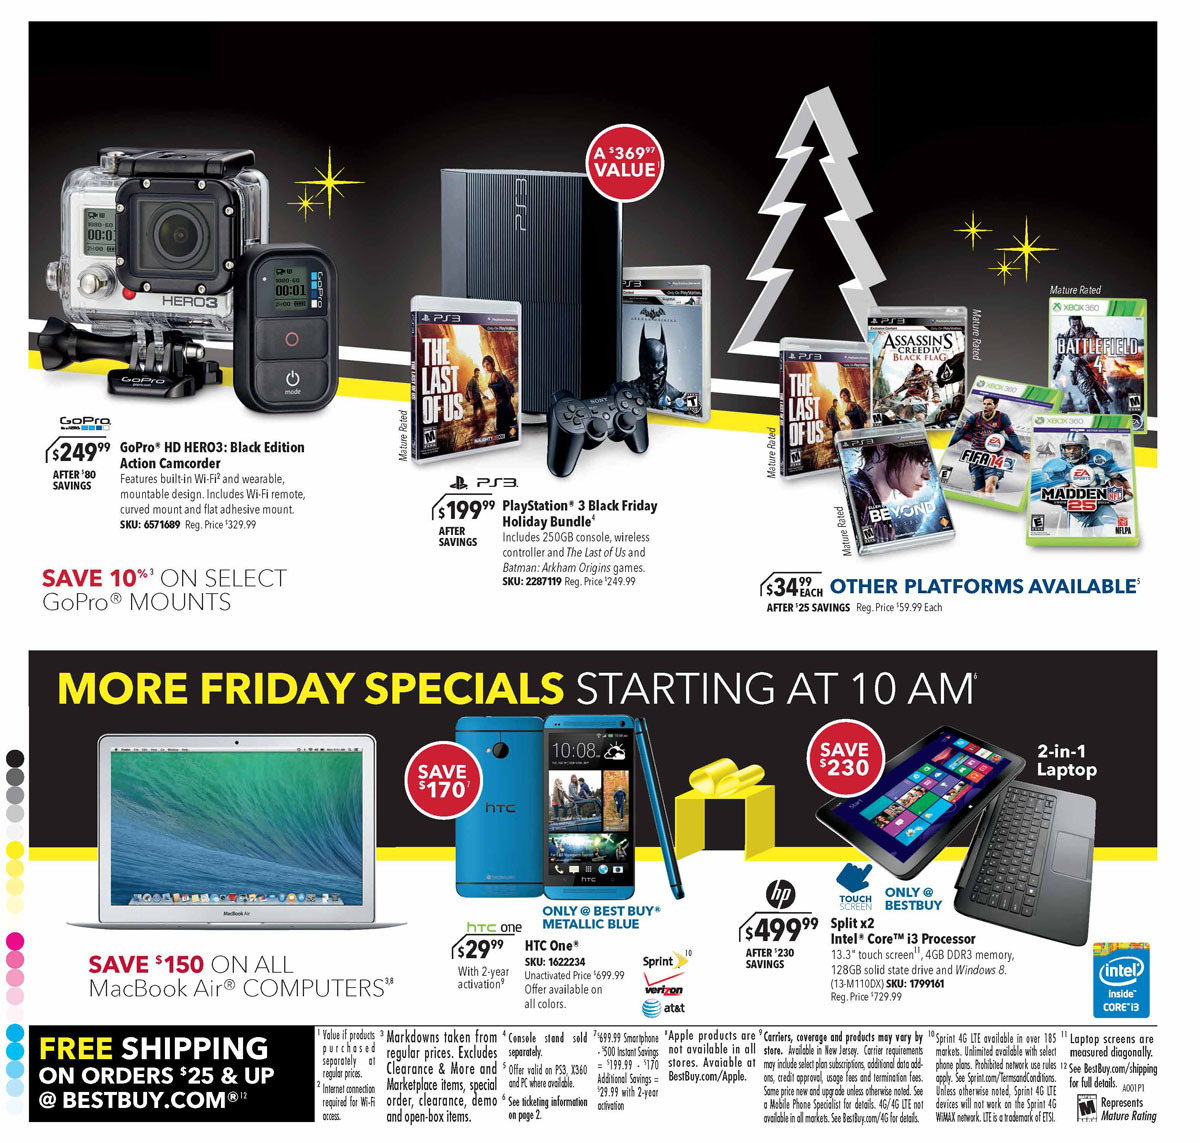 BestBuy_blackfriday2013_3